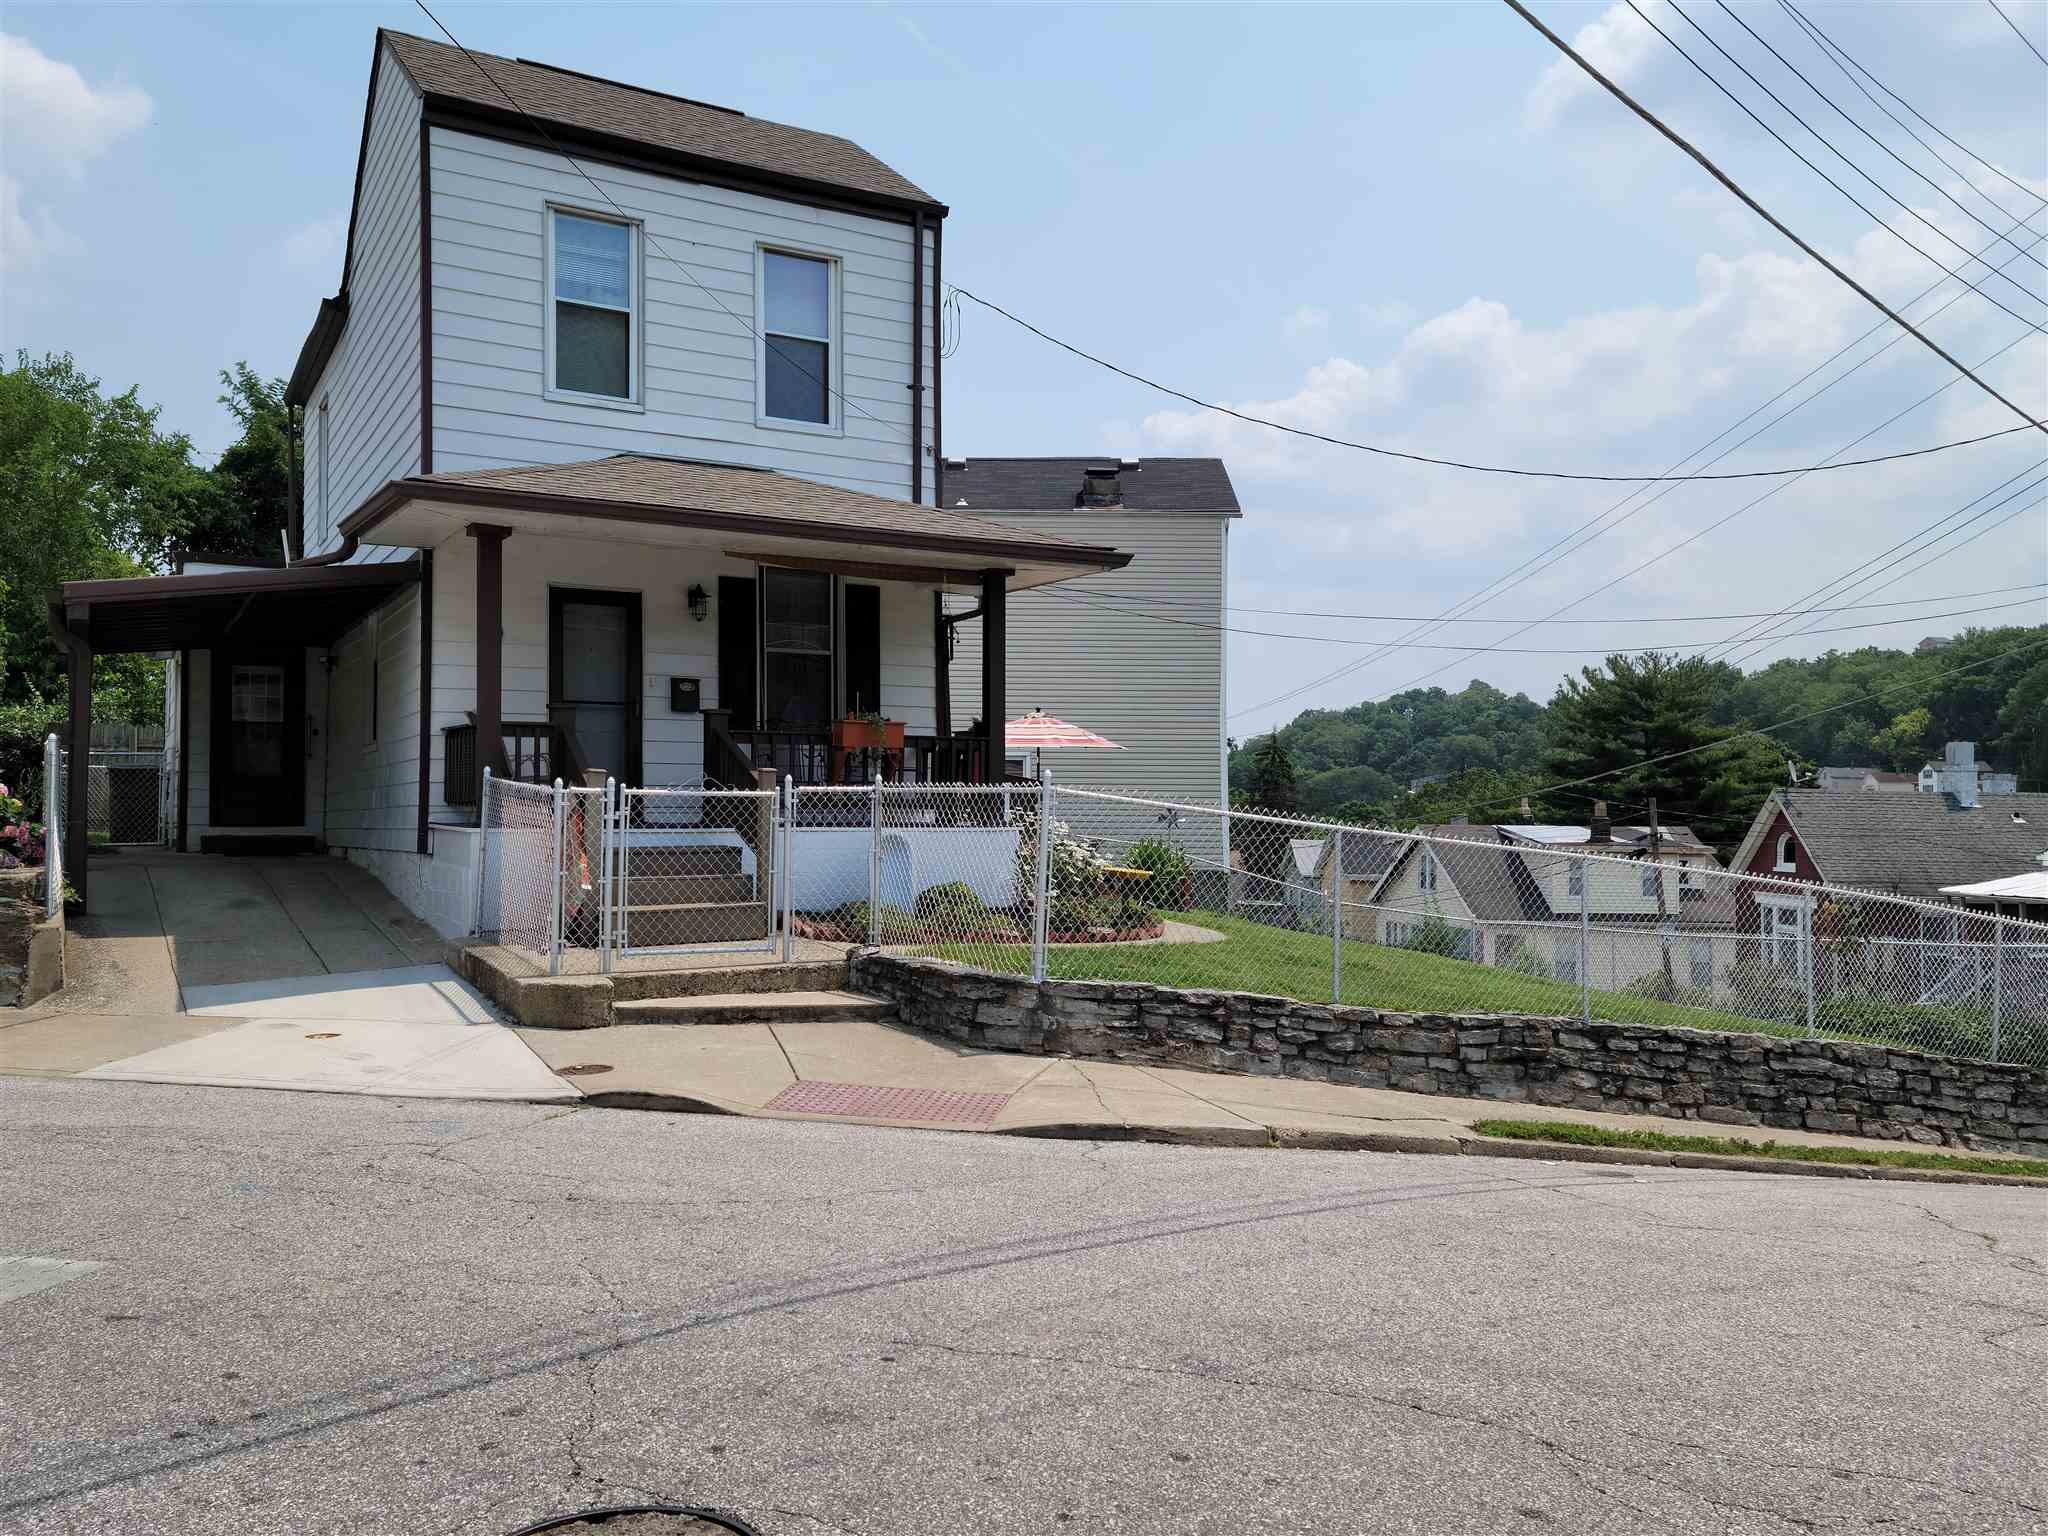 Photo 3 for 1306 Parkway Covington, KY 41016